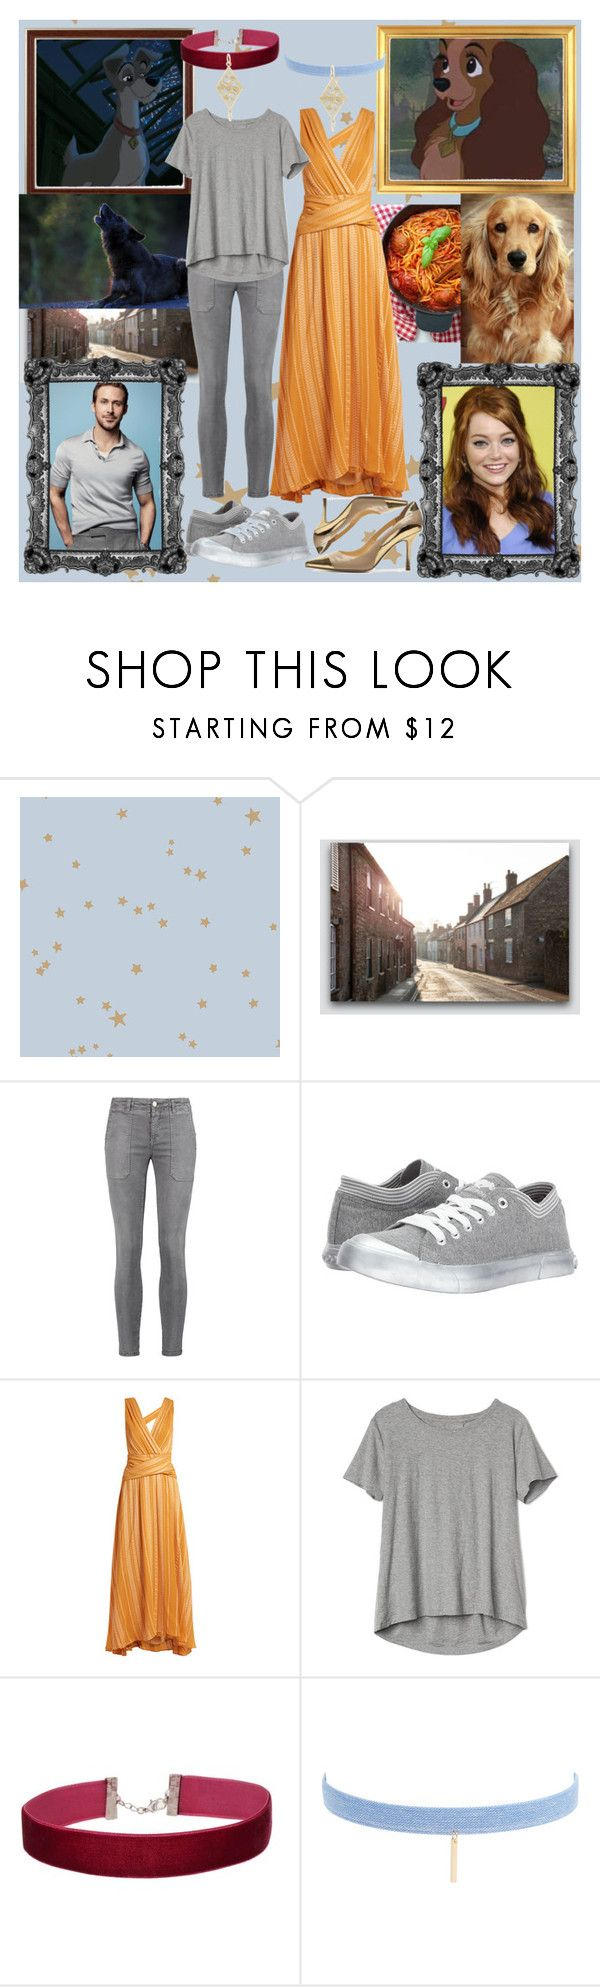 """""""Bella Notte"""" by fandom-girl365790 ❤ liked on Polyvore featuring Cole & Son, Current/Elliott, Rocket Dog, Zeus+Dione, Gap, Miss Selfridge, Jules Smith and Rembrandt Charms"""